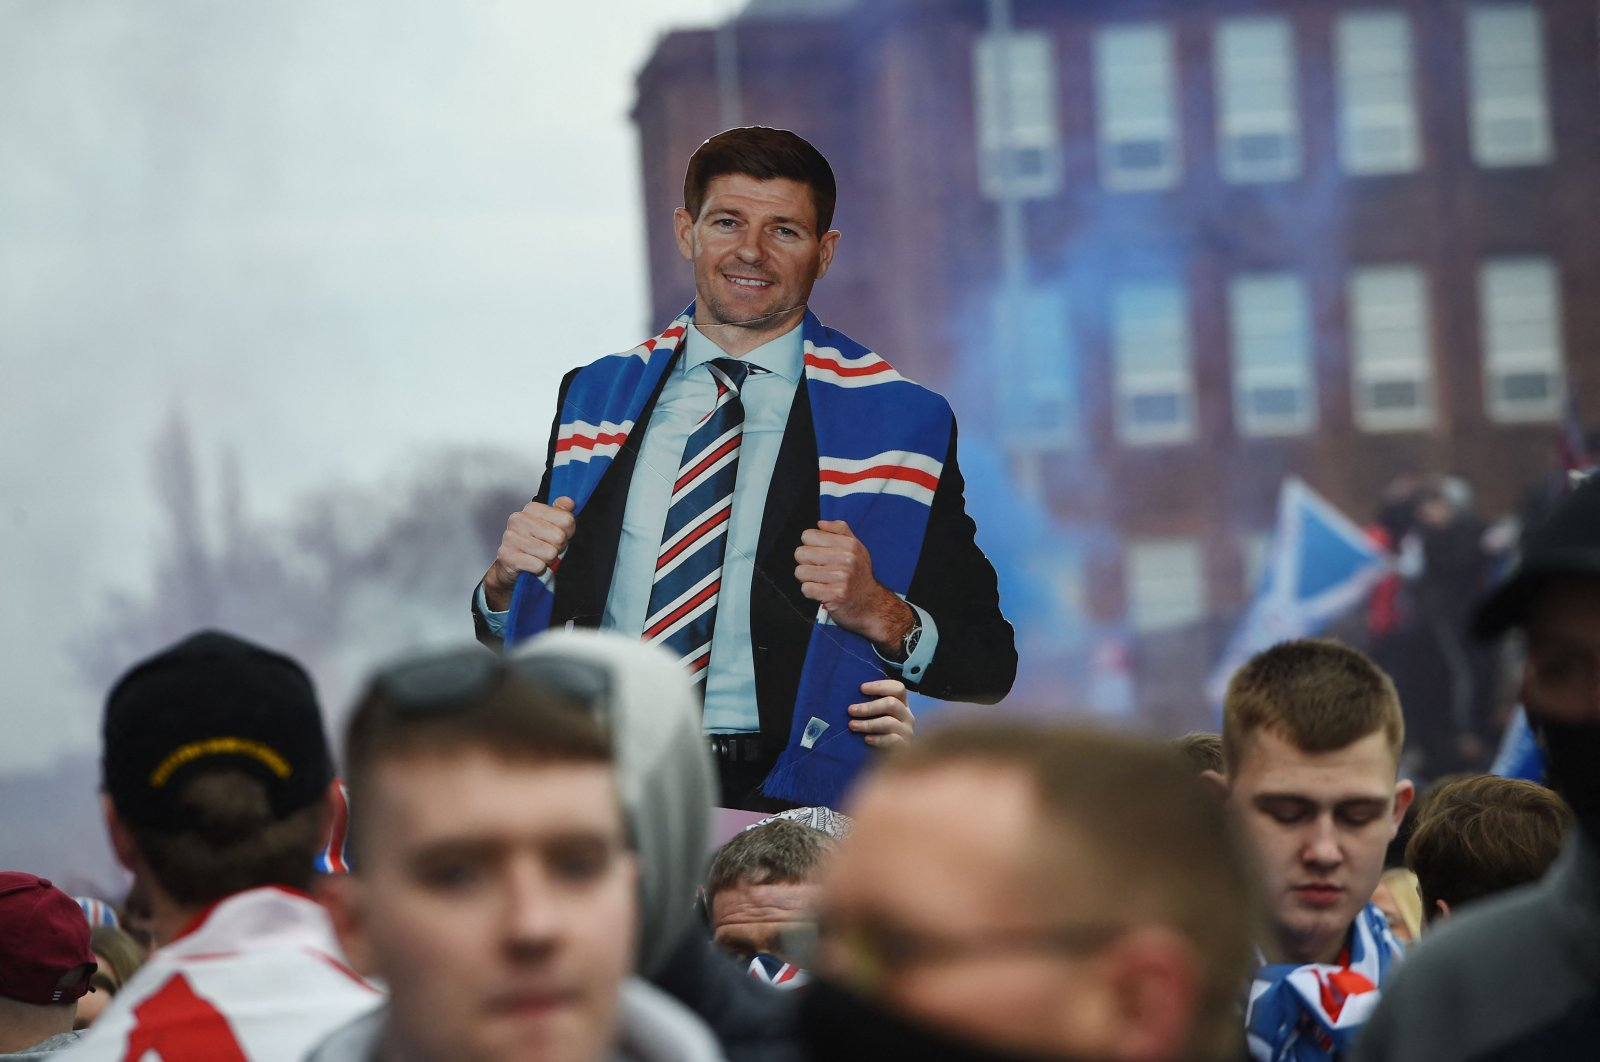 Rangers fans with a cut-out of English manager Steven Gerrard celebrate outside Ibrox Stadium, home of Rangers Football Club, in Glasgow, Scotland, March 7, 2021. (AFP Photo)